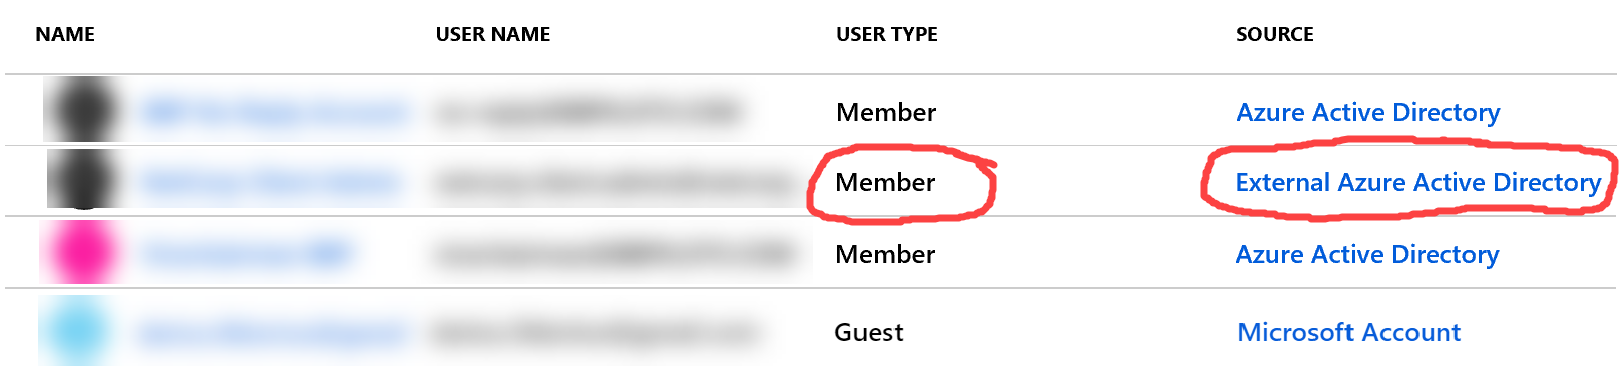 Add a User as a Member from a different Azure AD Tenant - Darius